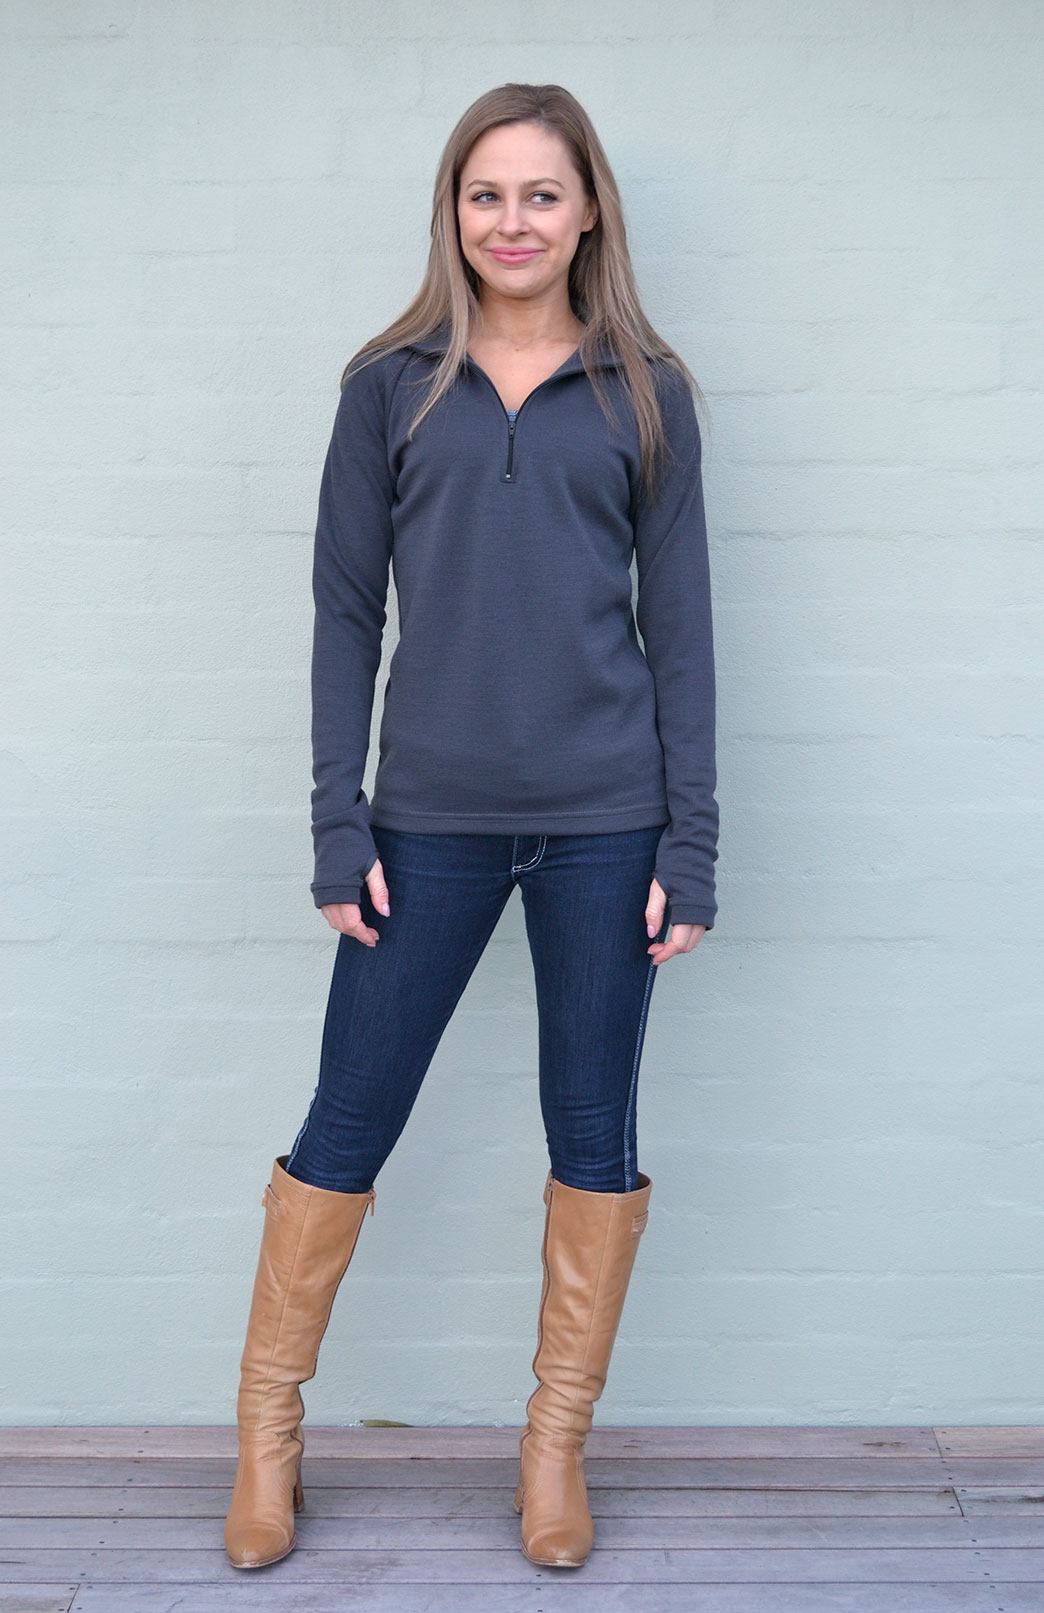 Women's Zip Neck Top - 360g in Steel